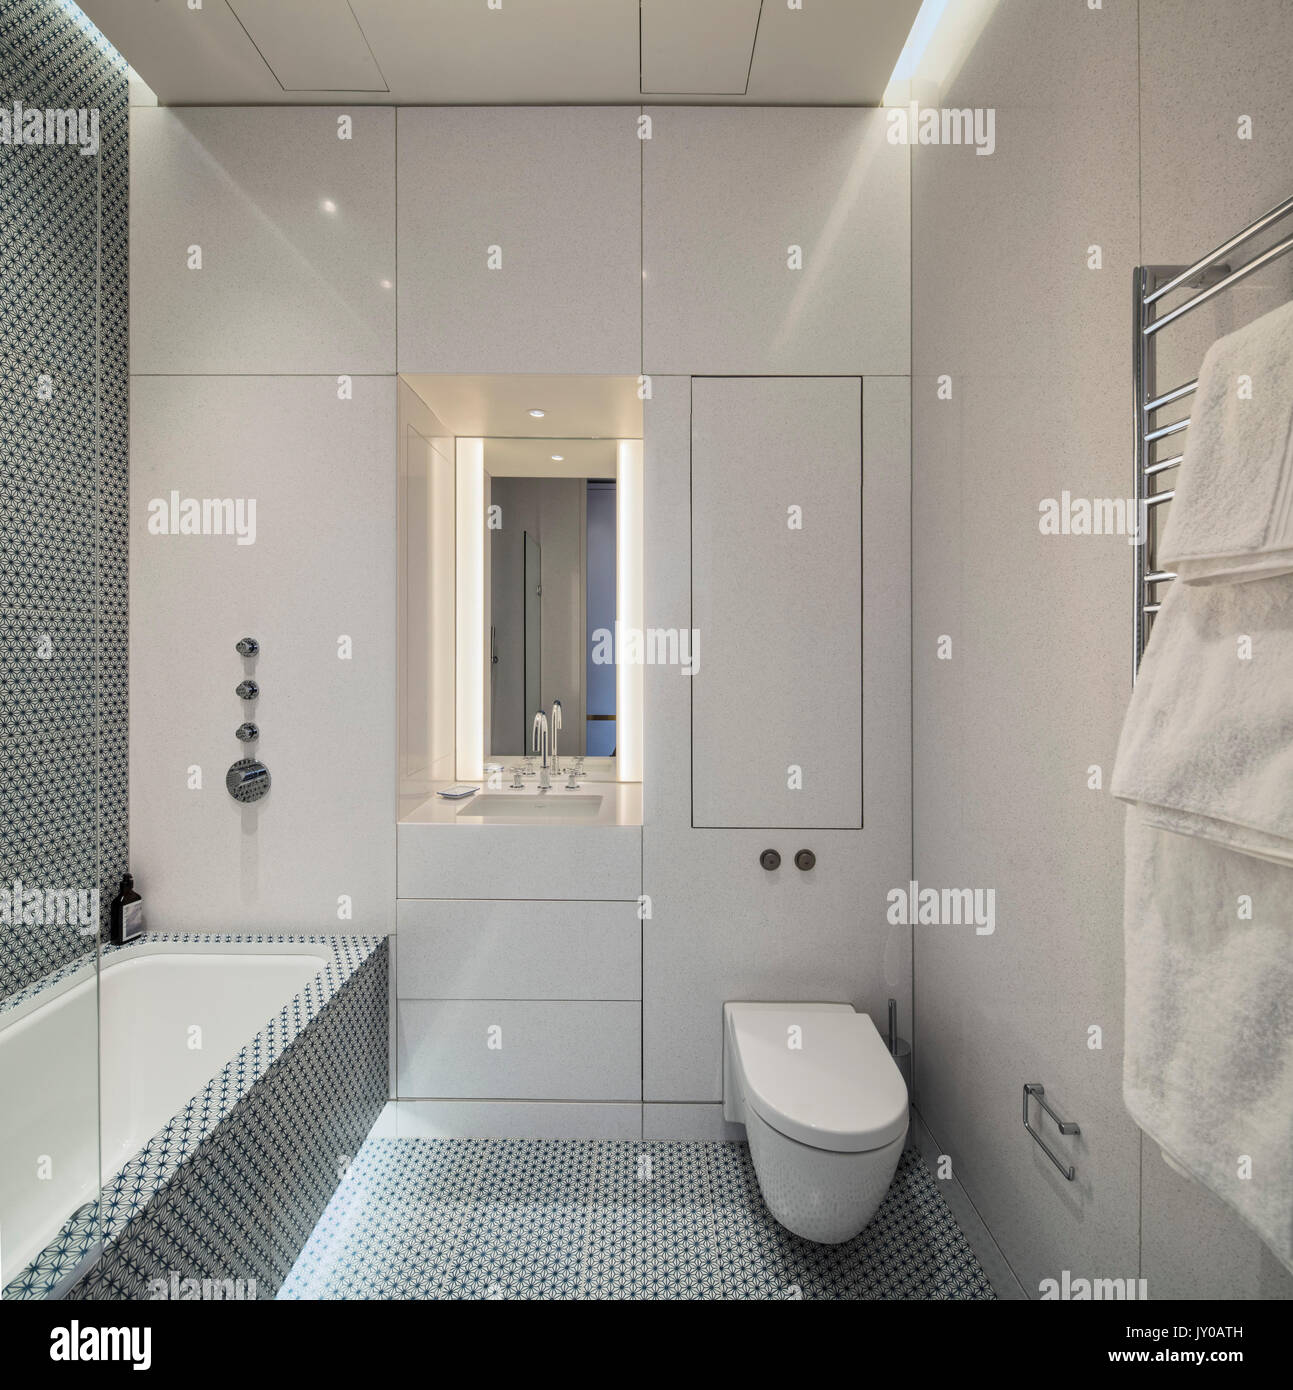 Bathroom Canaletto Apartments Penthouse London United Kingdom Stock Photo Royalty Free Image